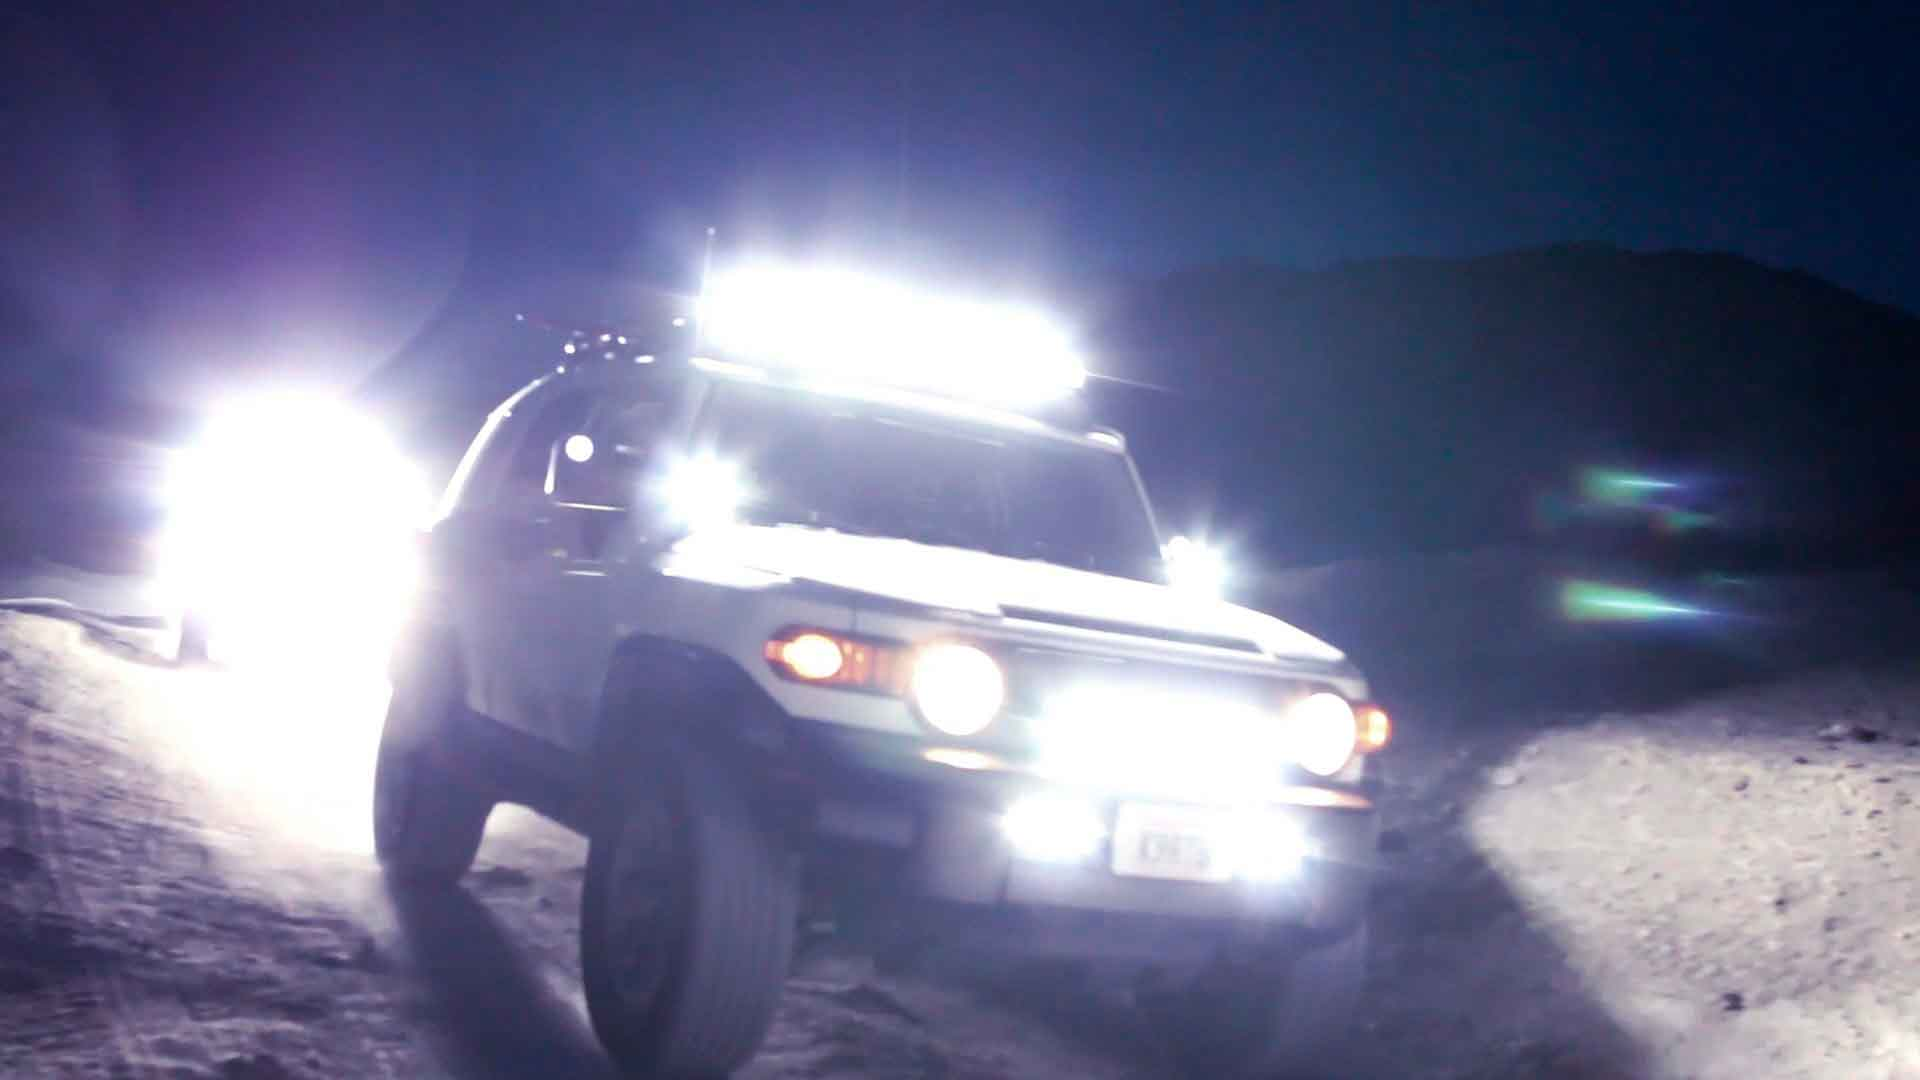 Best Off Roading Lights Nov 2018 Expert Ratings Reviews Led Light Bar Additionally 12v Wiring On Flood Hid Work Vision X Products Are Produced In Two Locations Design And Engineering Takes Place The Usa While Manufacturing Is Done At Their Asian